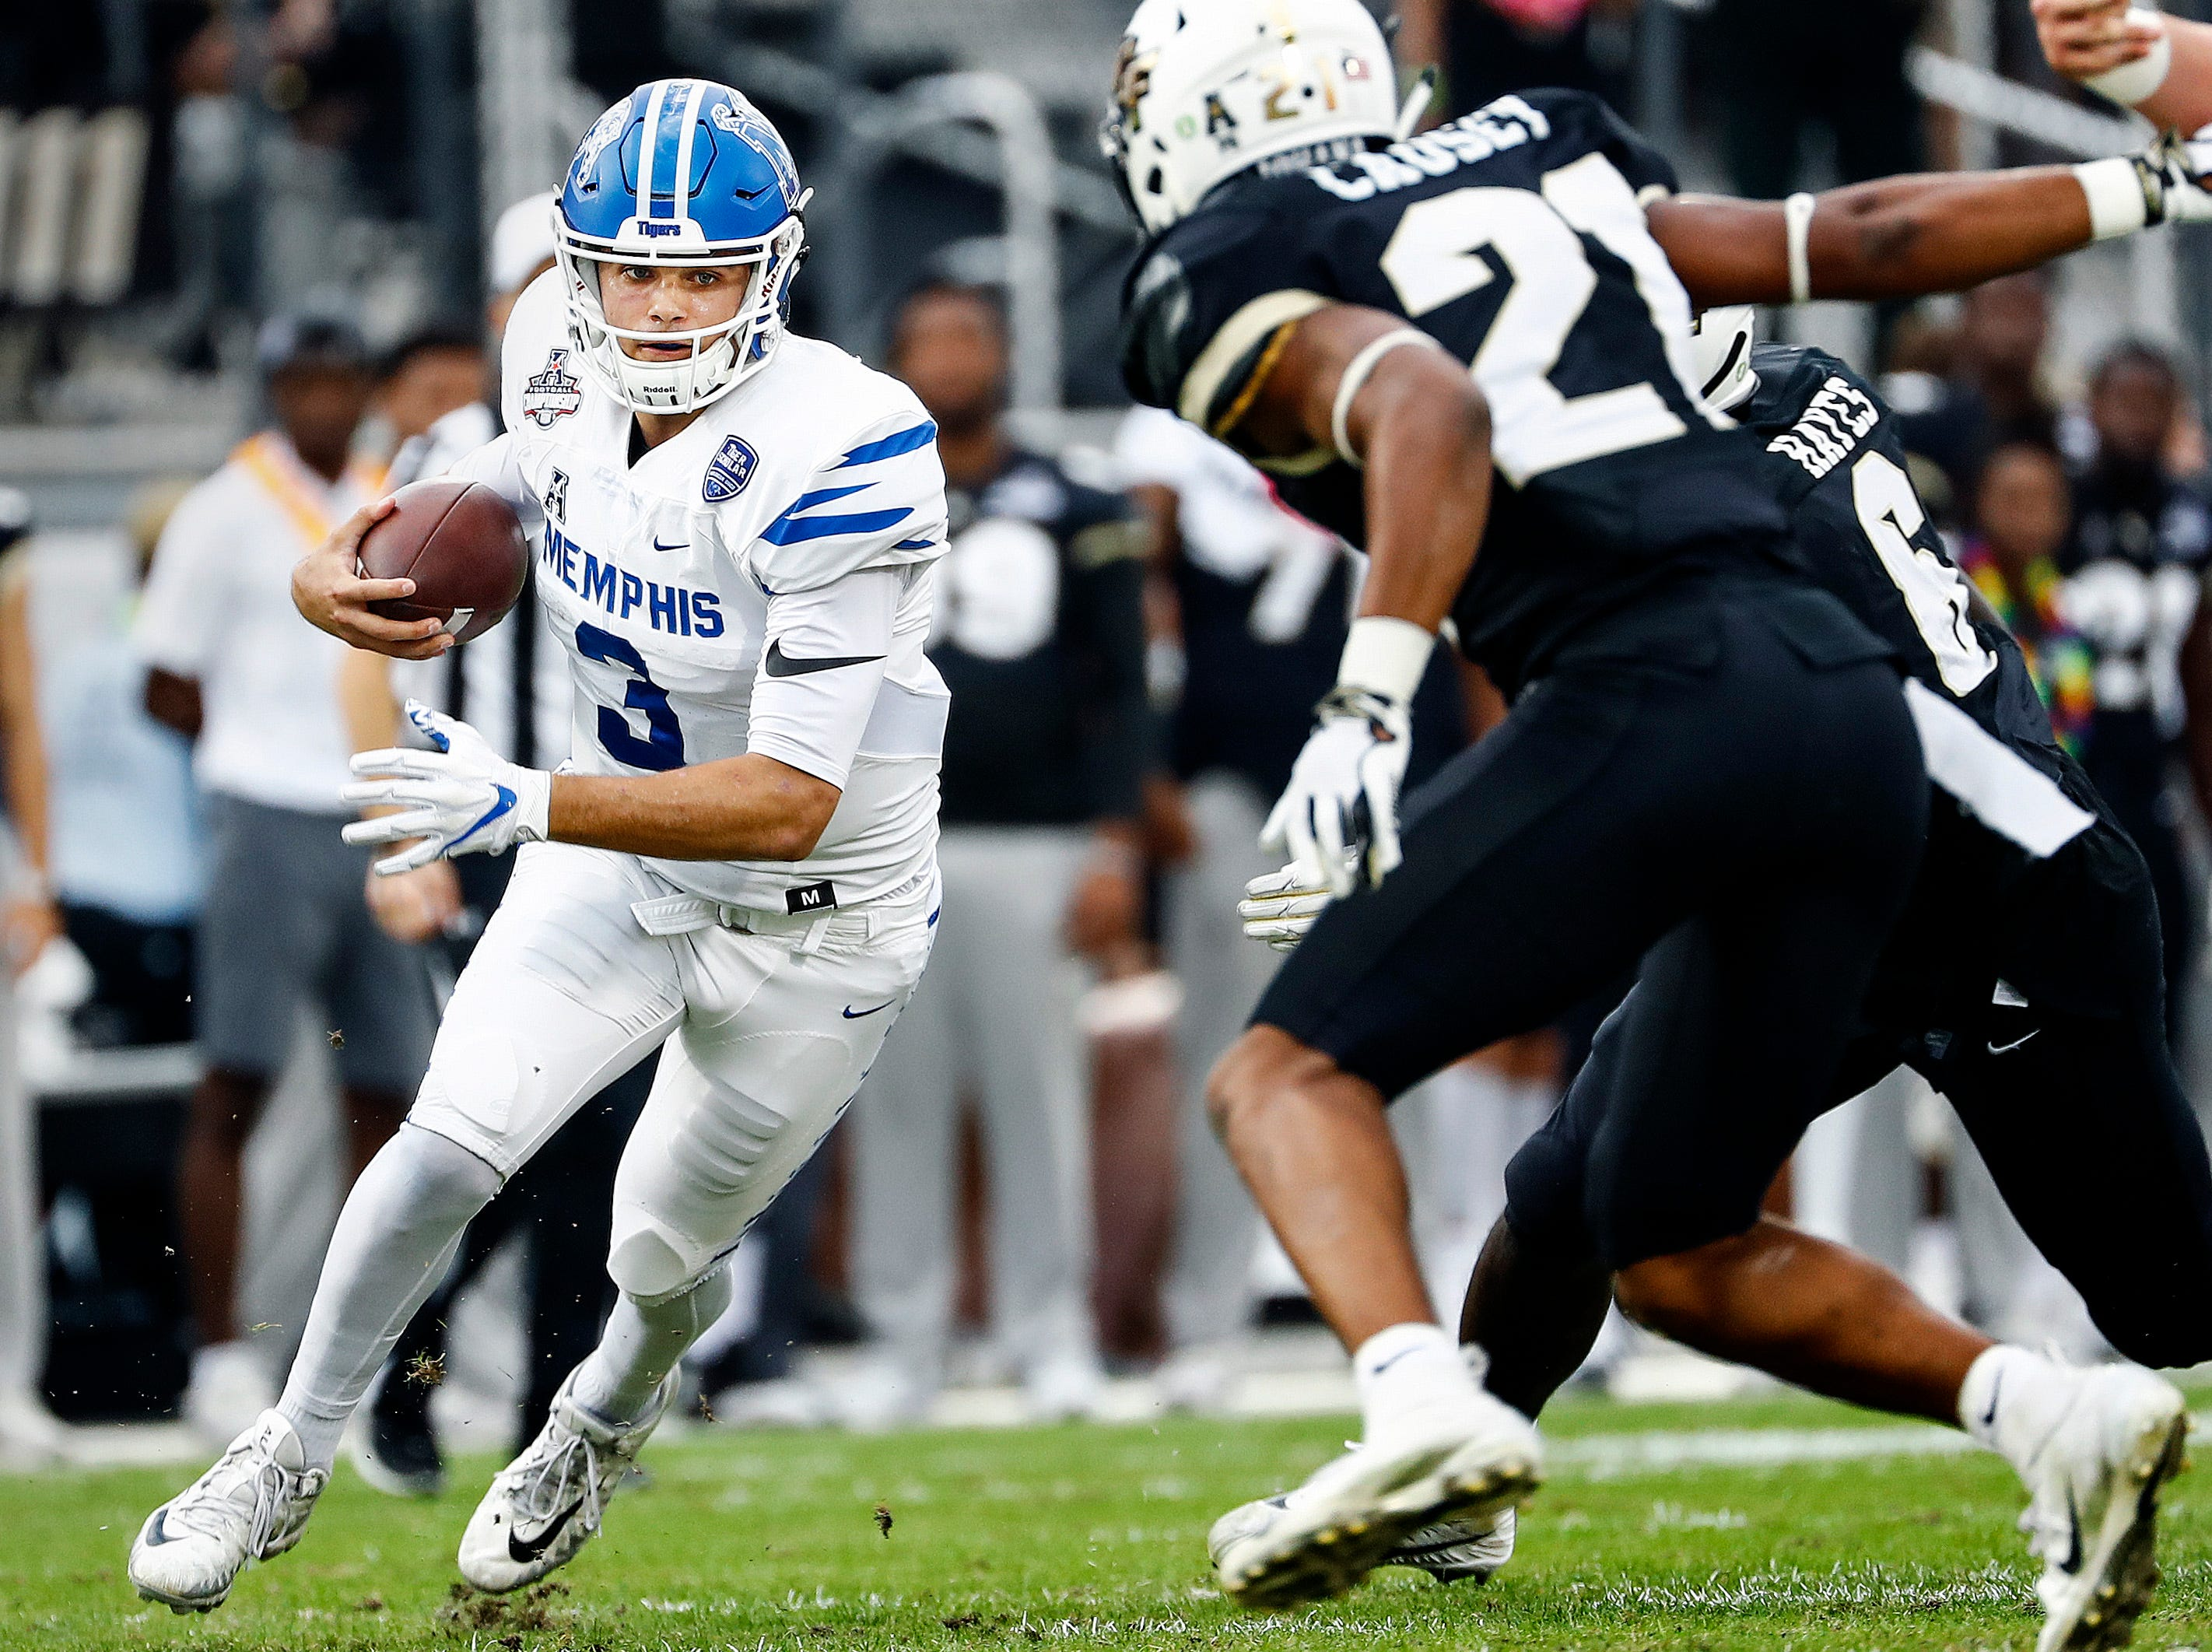 Memphis quarterback Brady White (left) looks for a lane against the UCF defense during action at the AAC Championship Football game Saturday, December 1, 2018 in Orlando.